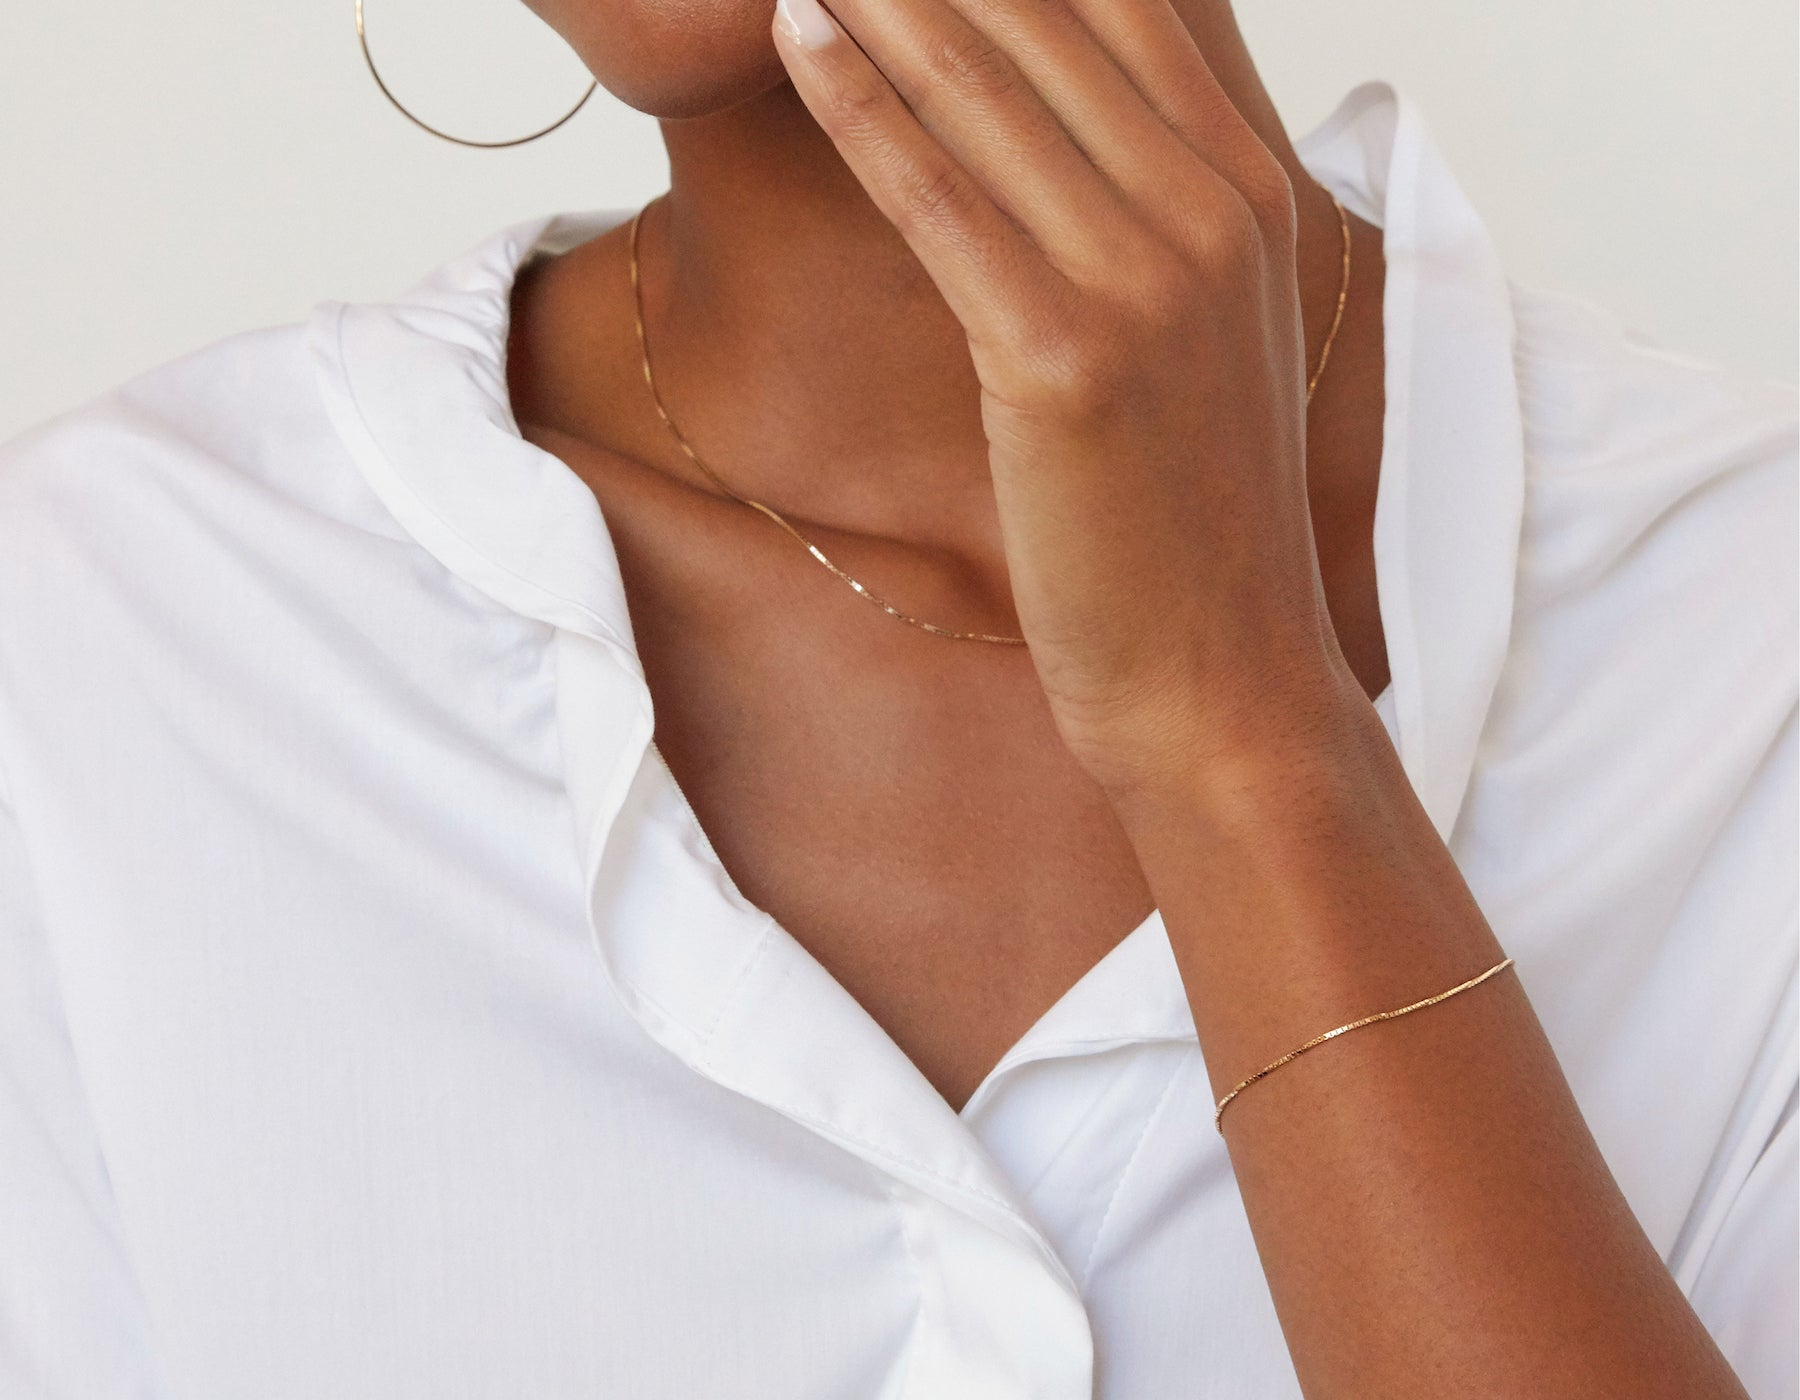 Model wearing Vrai 14k solid gold Silk Box Bracelet diamond cut chain simple classic